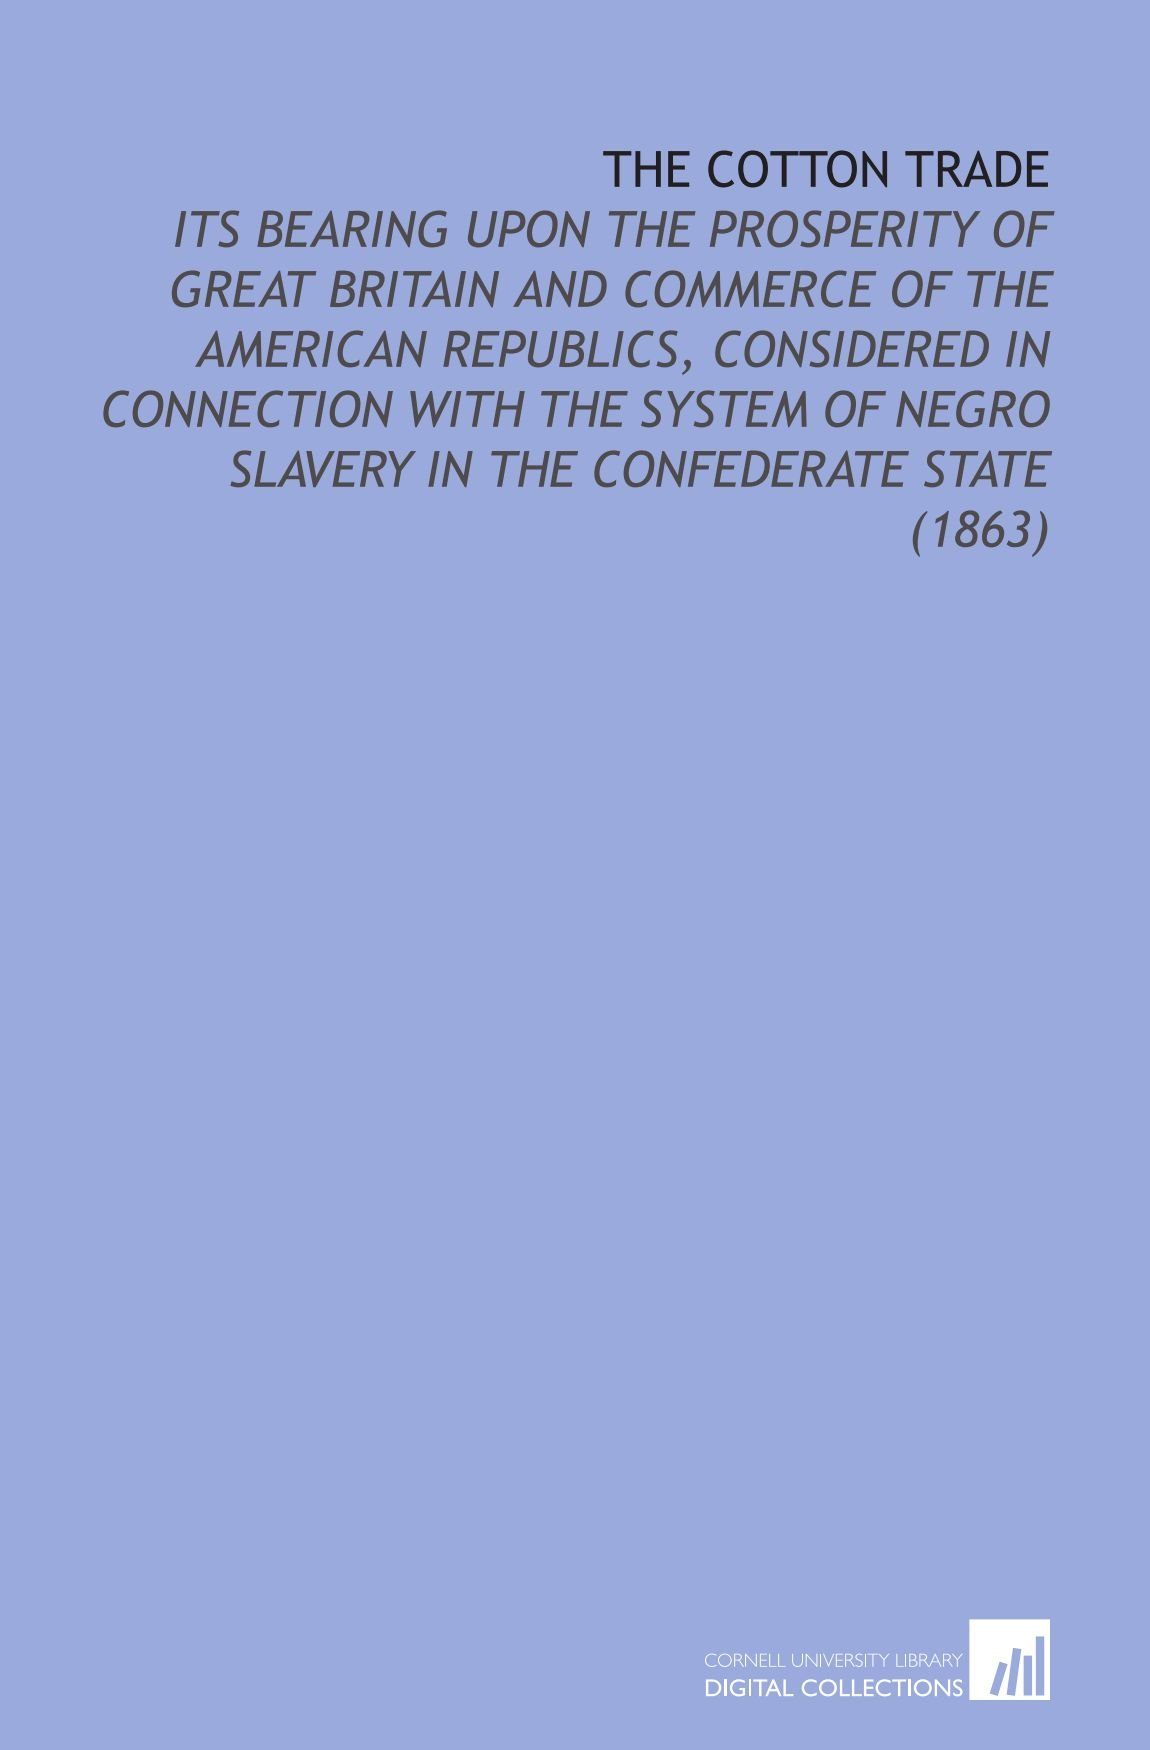 The Cotton Trade: Its Bearing Upon the Prosperity of Great Britain and Commerce of the American Republics, Considered in Connection With the System of Negro Slavery in the Confederate State (1863) ebook